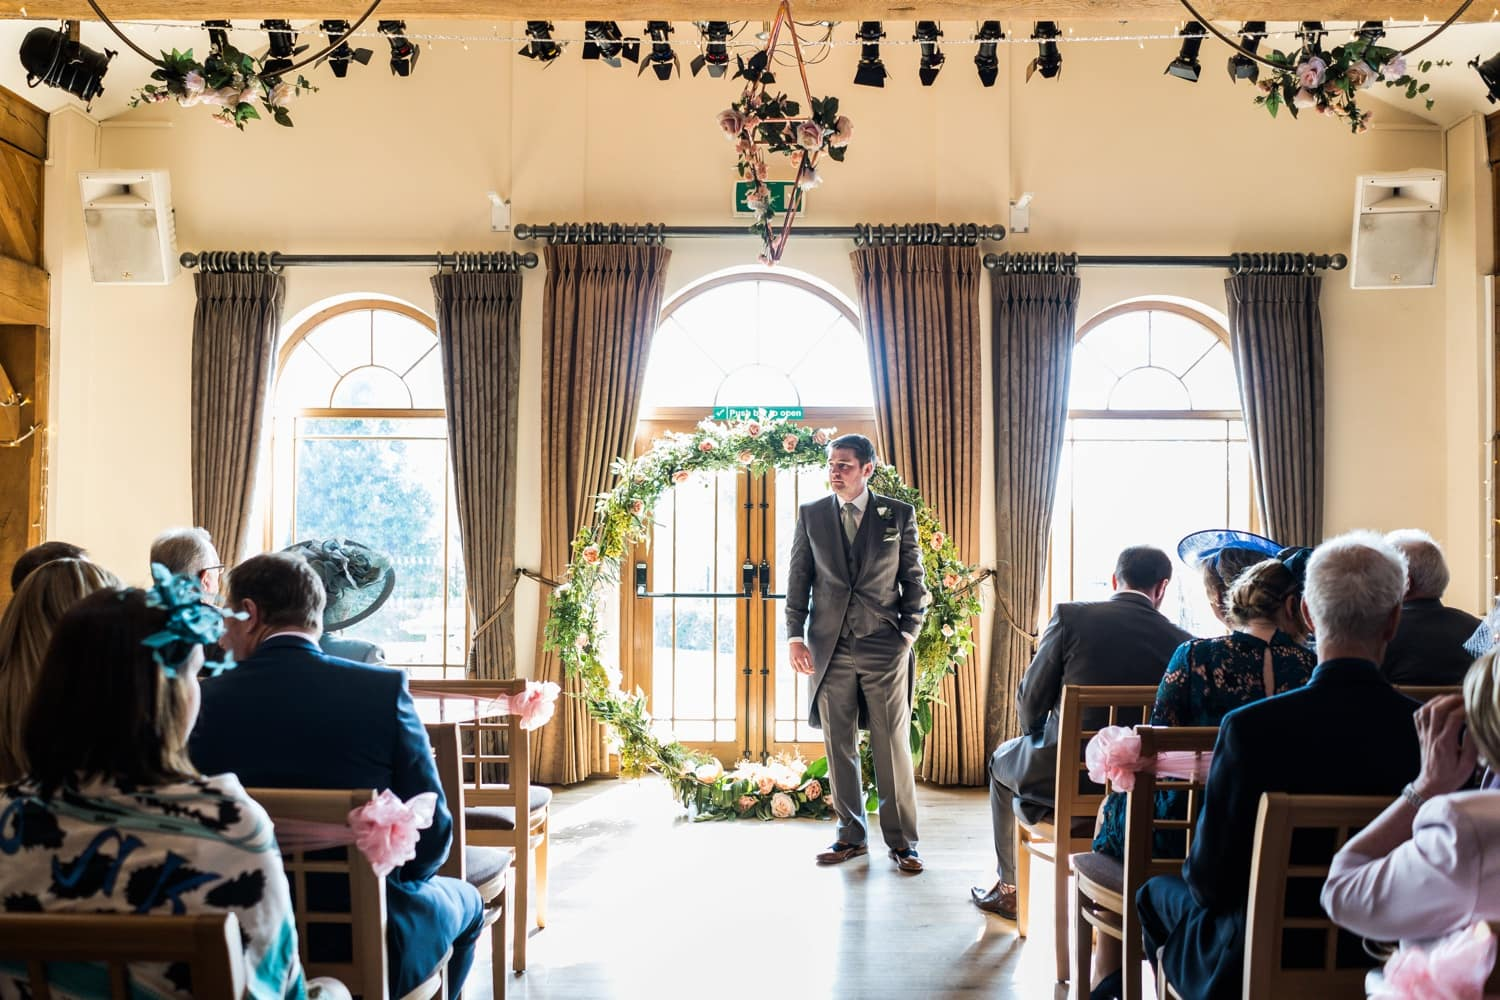 Groom waiting for bride at King Arthur Hotel in Gower, South Wales